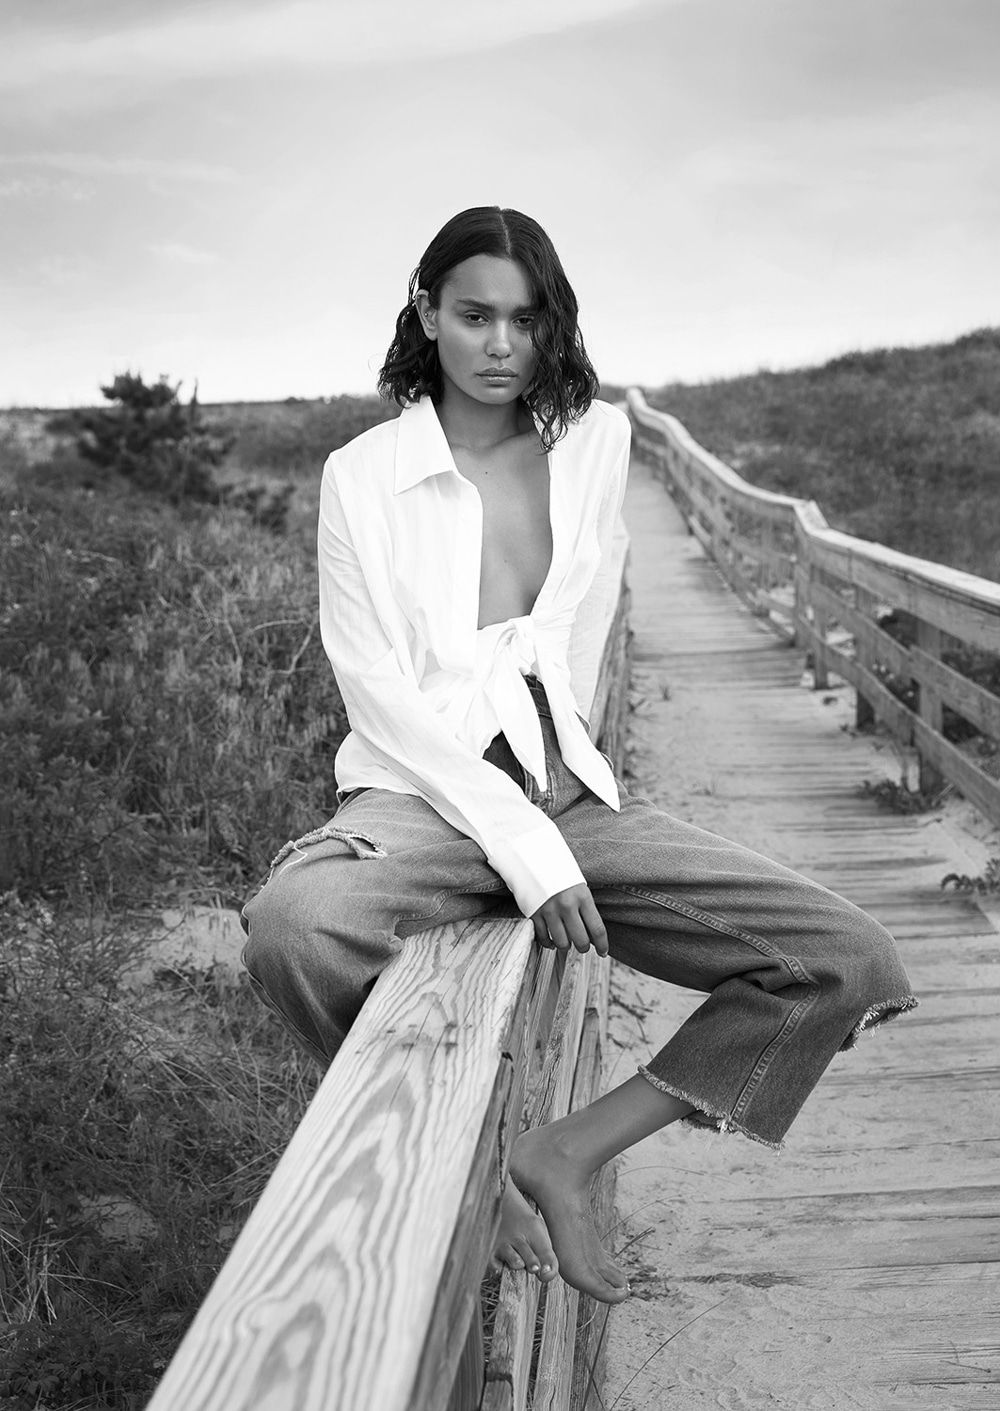 Remi Pyrdol Latest Editorial Has Been Released Featuring Sam Swan Beach Photoshoot Photography Inspiration Portrait Model Poses Photography